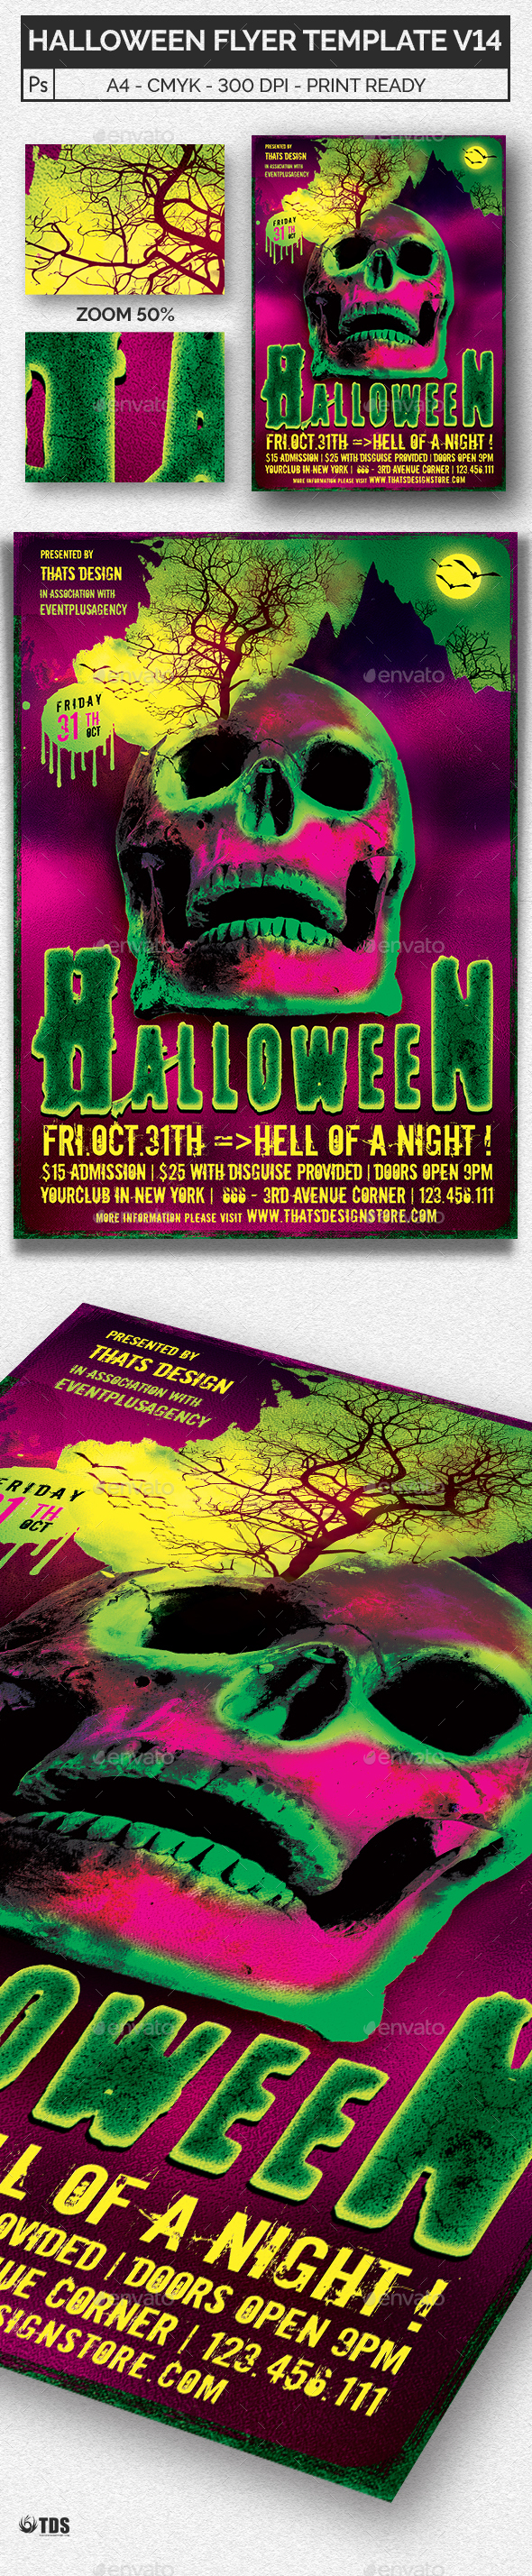 Halloween Flyer Template V14 - Holidays Events